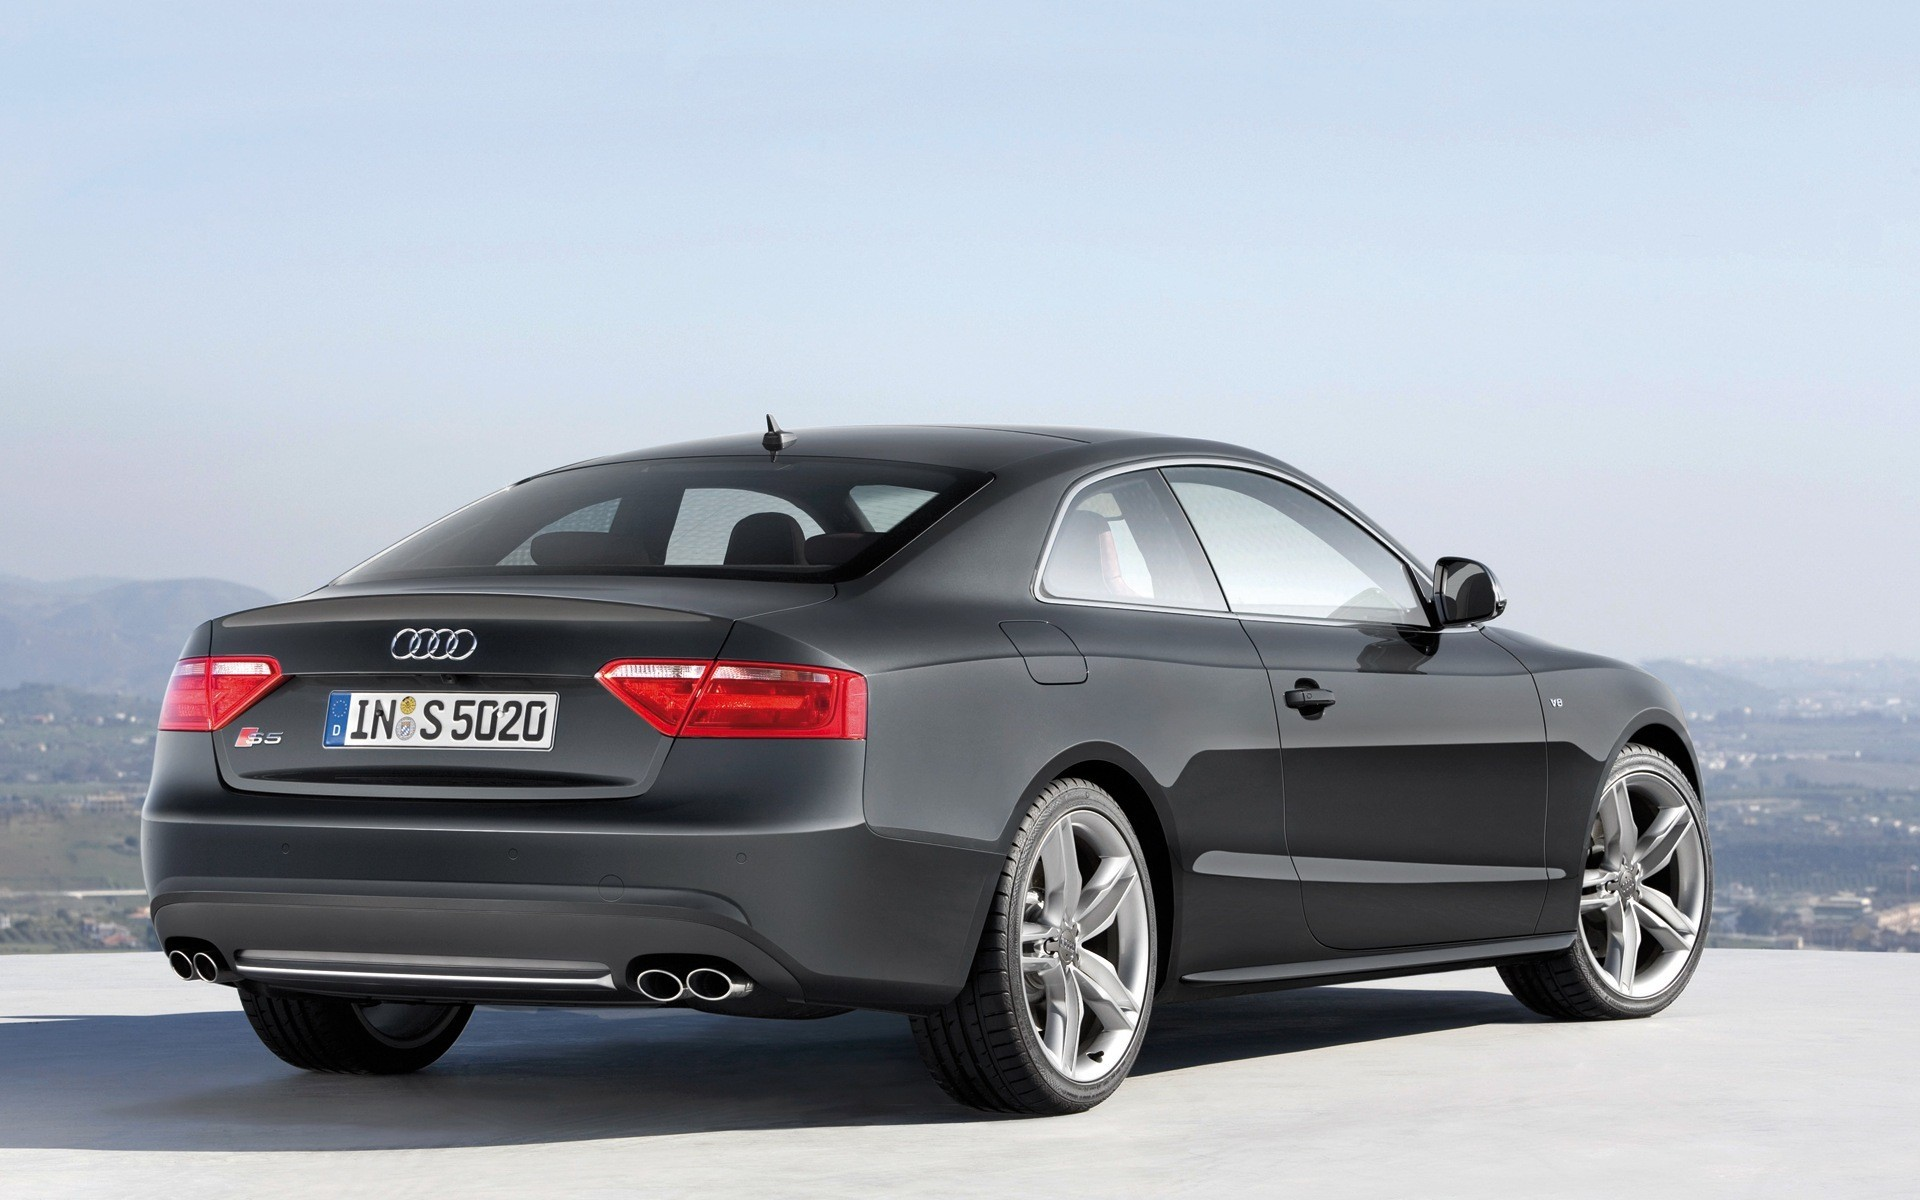 cars Audi audi s5 HD Wallpaper